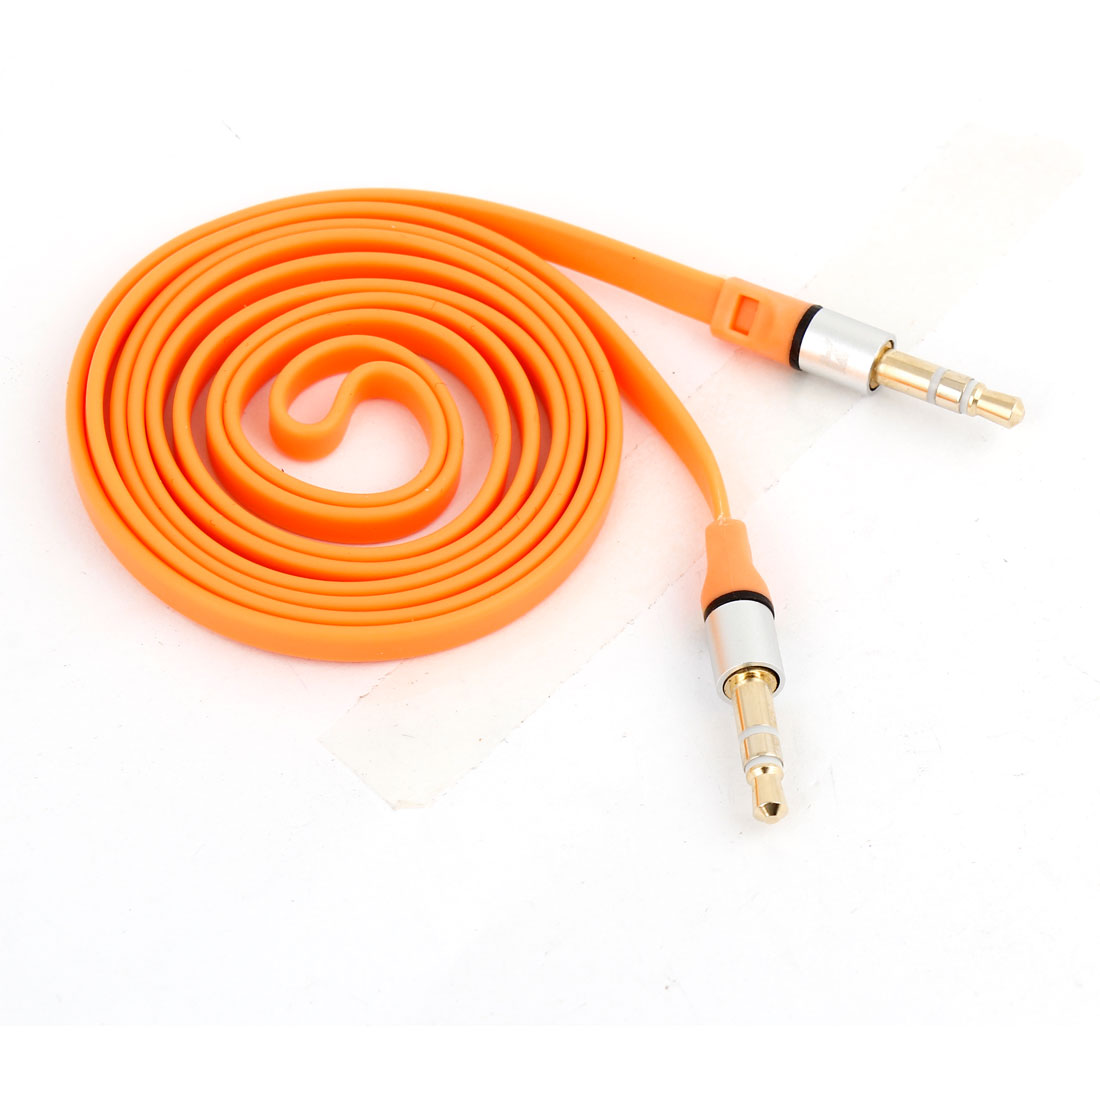 Orange 3.5mm Male to 3.5mm Male Plug Adapter Stereo Audio Extension Flat Cable 1M Long